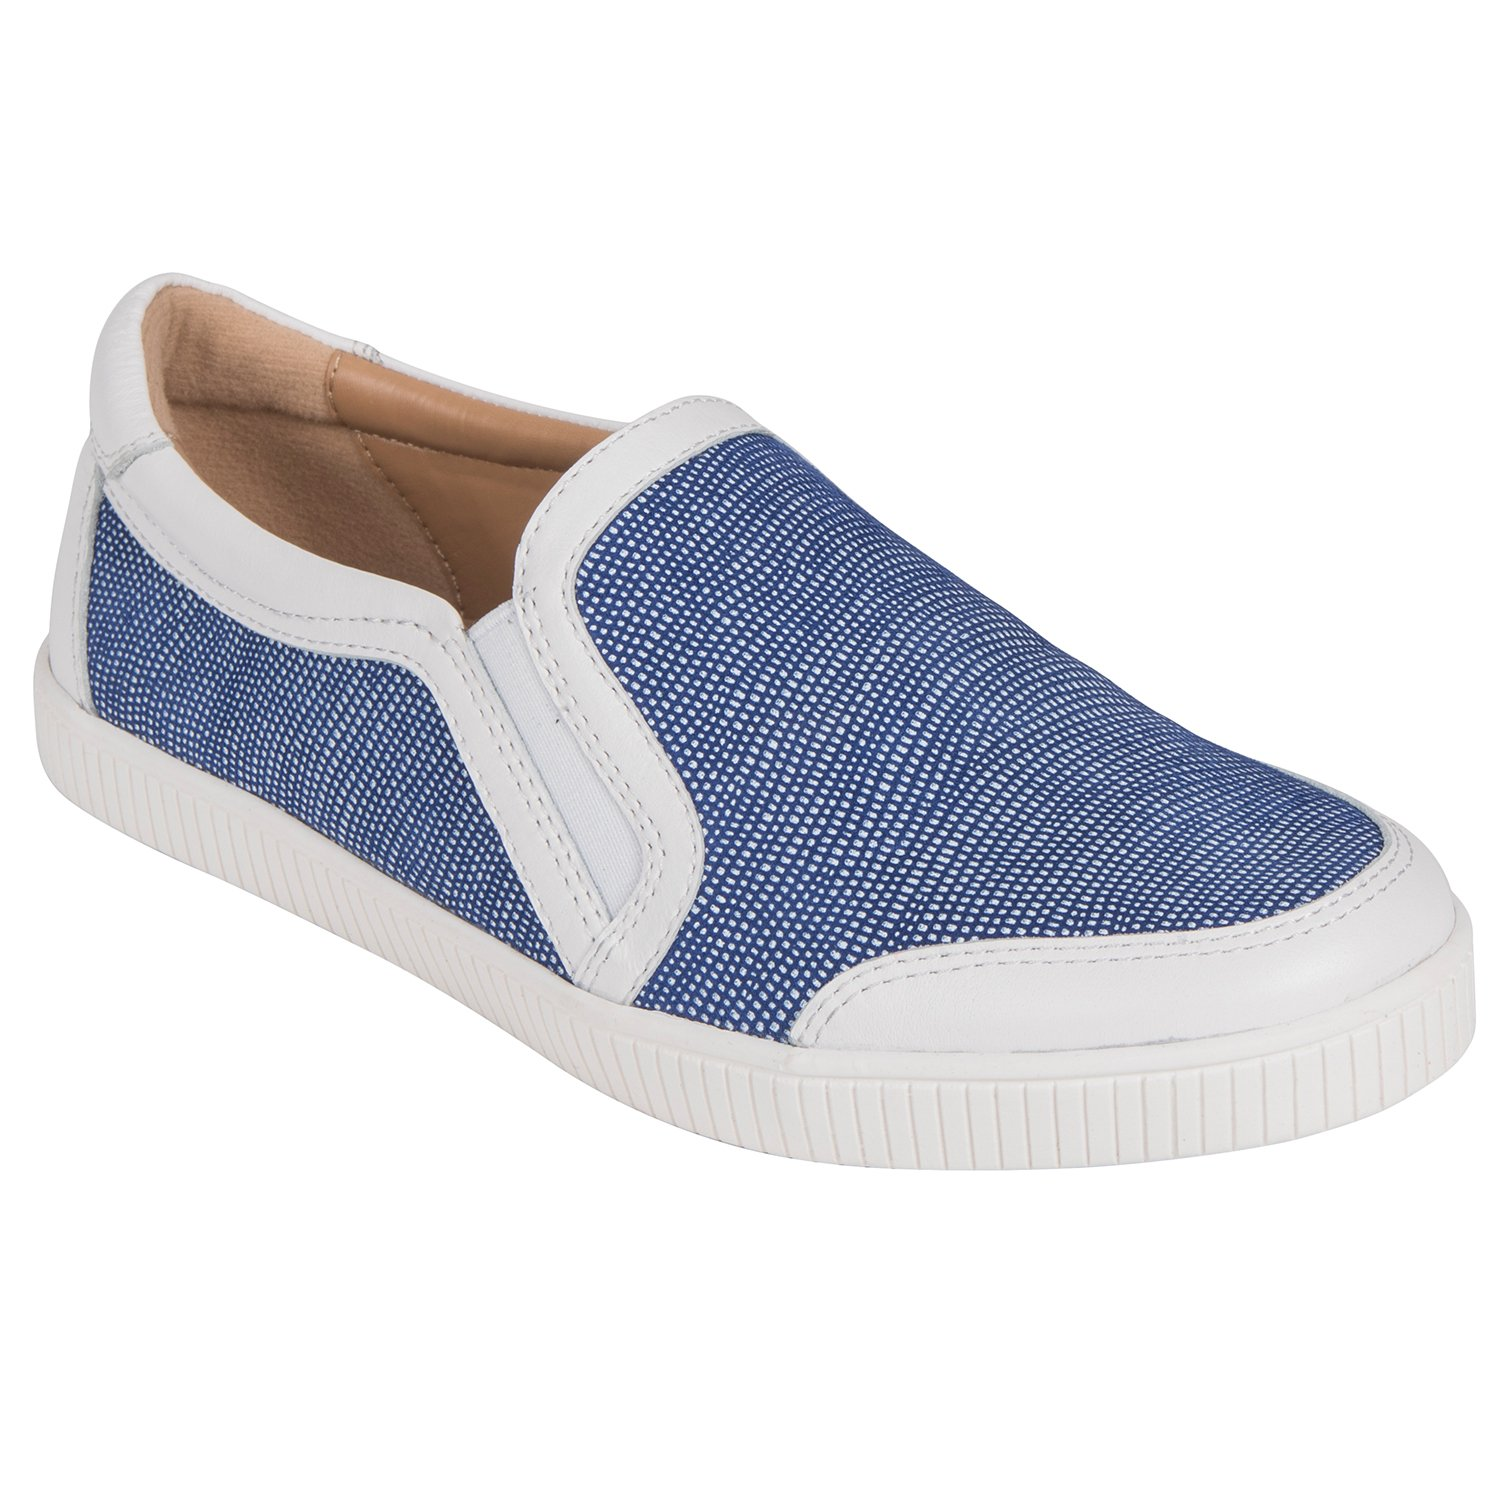 Earth Shoes Currant B07962LX95 7.5 B(M) US|Sapphire Blue